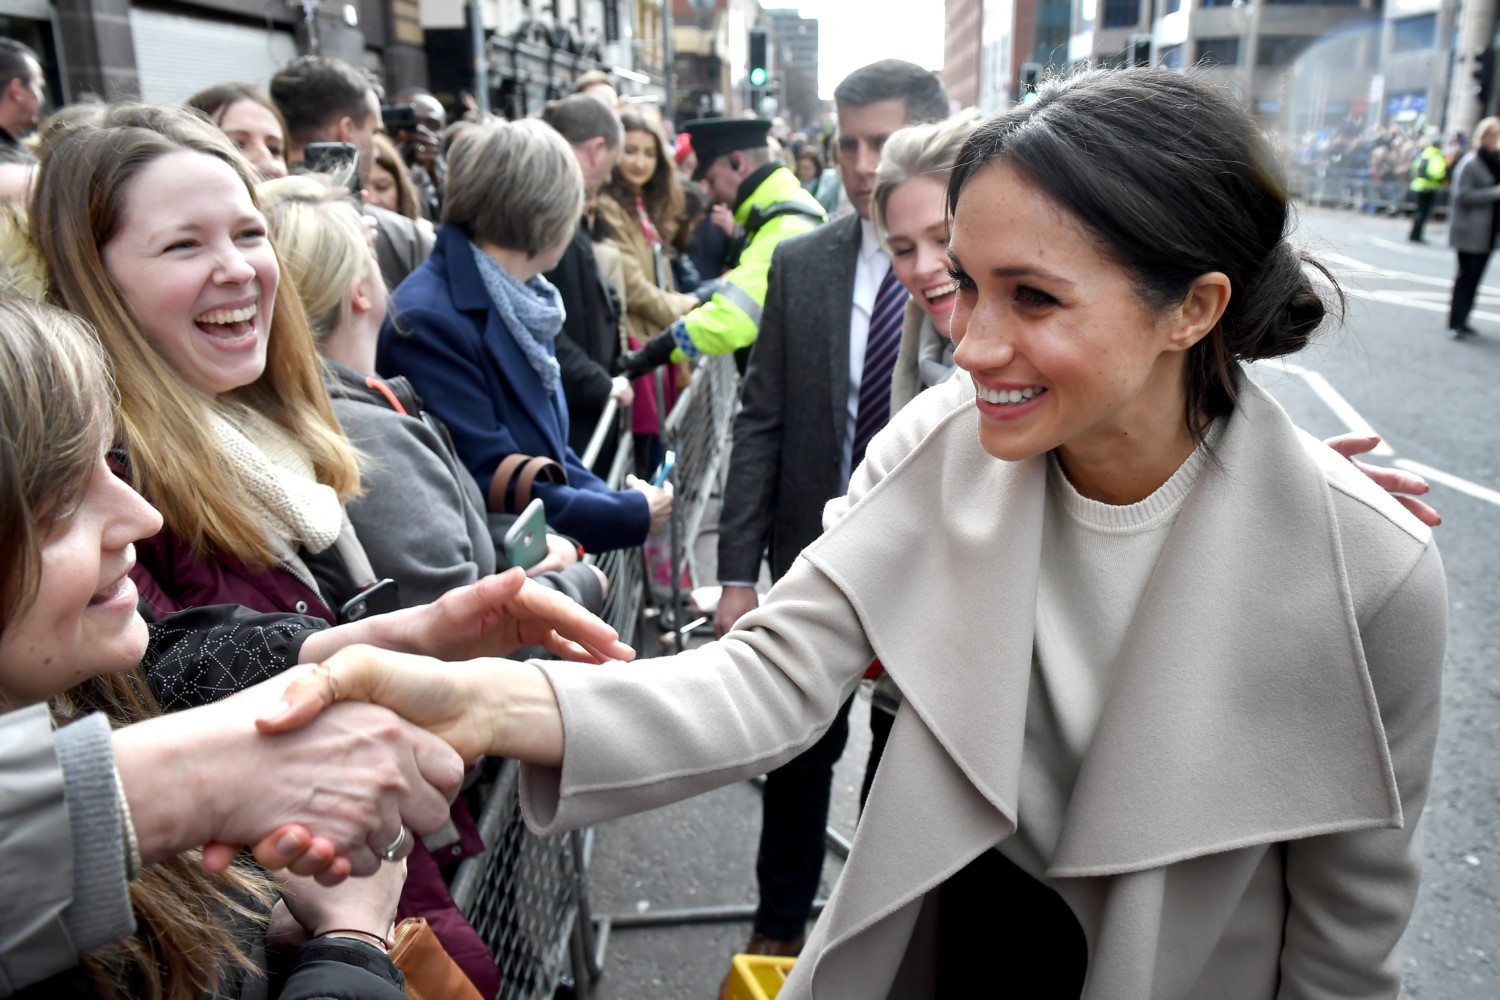 meghan markle shaking hands photo